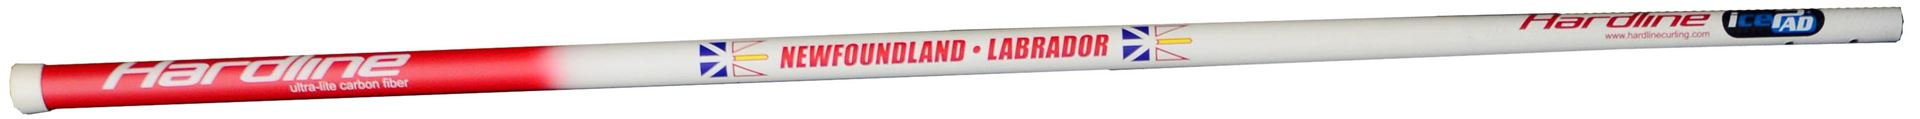 Newfoundland and Labrador Hardline Specialty brooms and Icepad